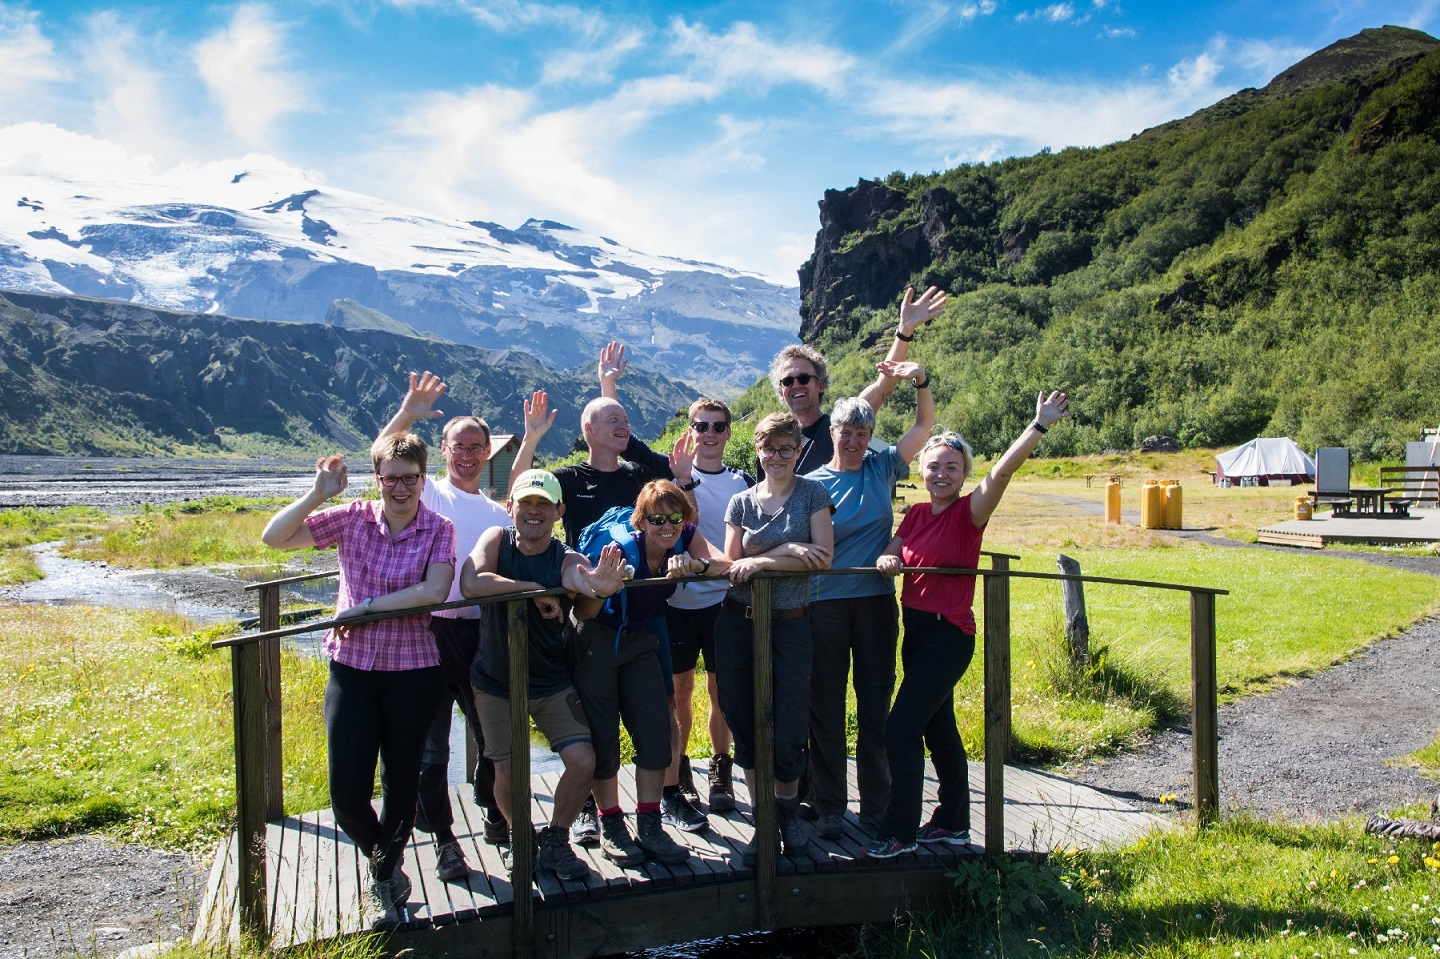 Guided 5 Day Hiking Tour of Iceland's Laugavegur Trail with Camping in Mountain Hunts - day 4